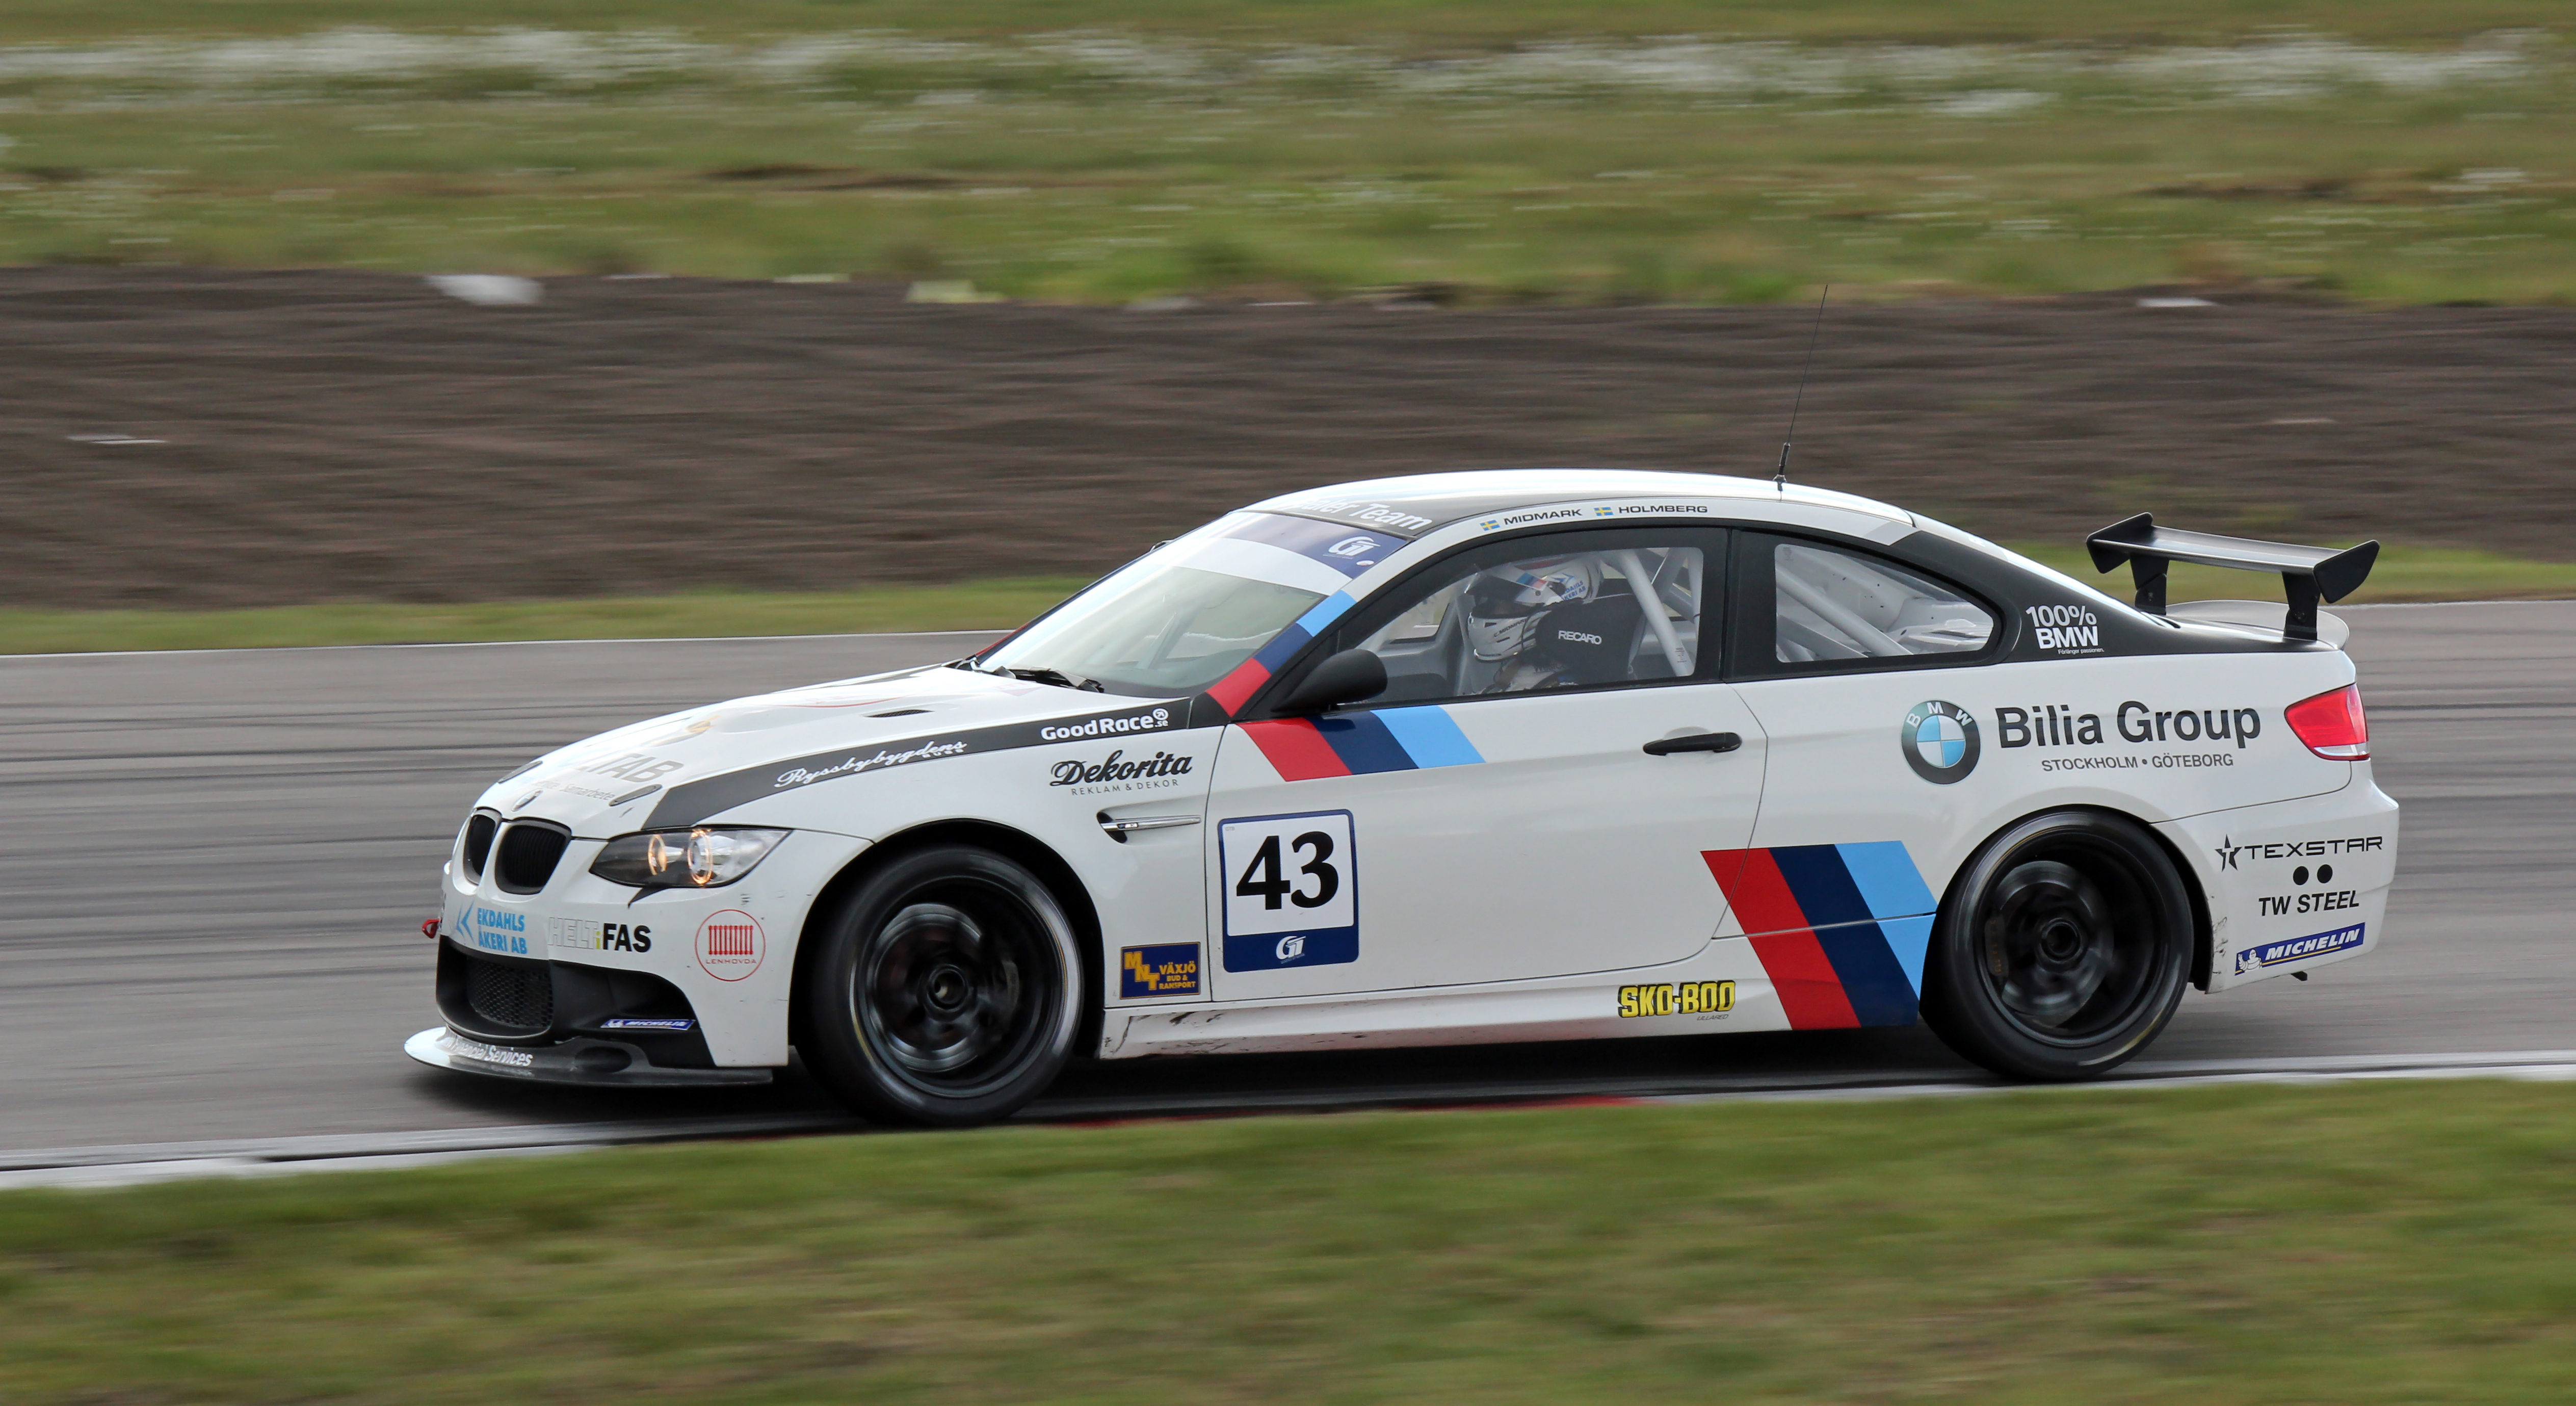 File Chris Midmark Bmw M3 Gt4 Swedish Gt Anderstorp 2012